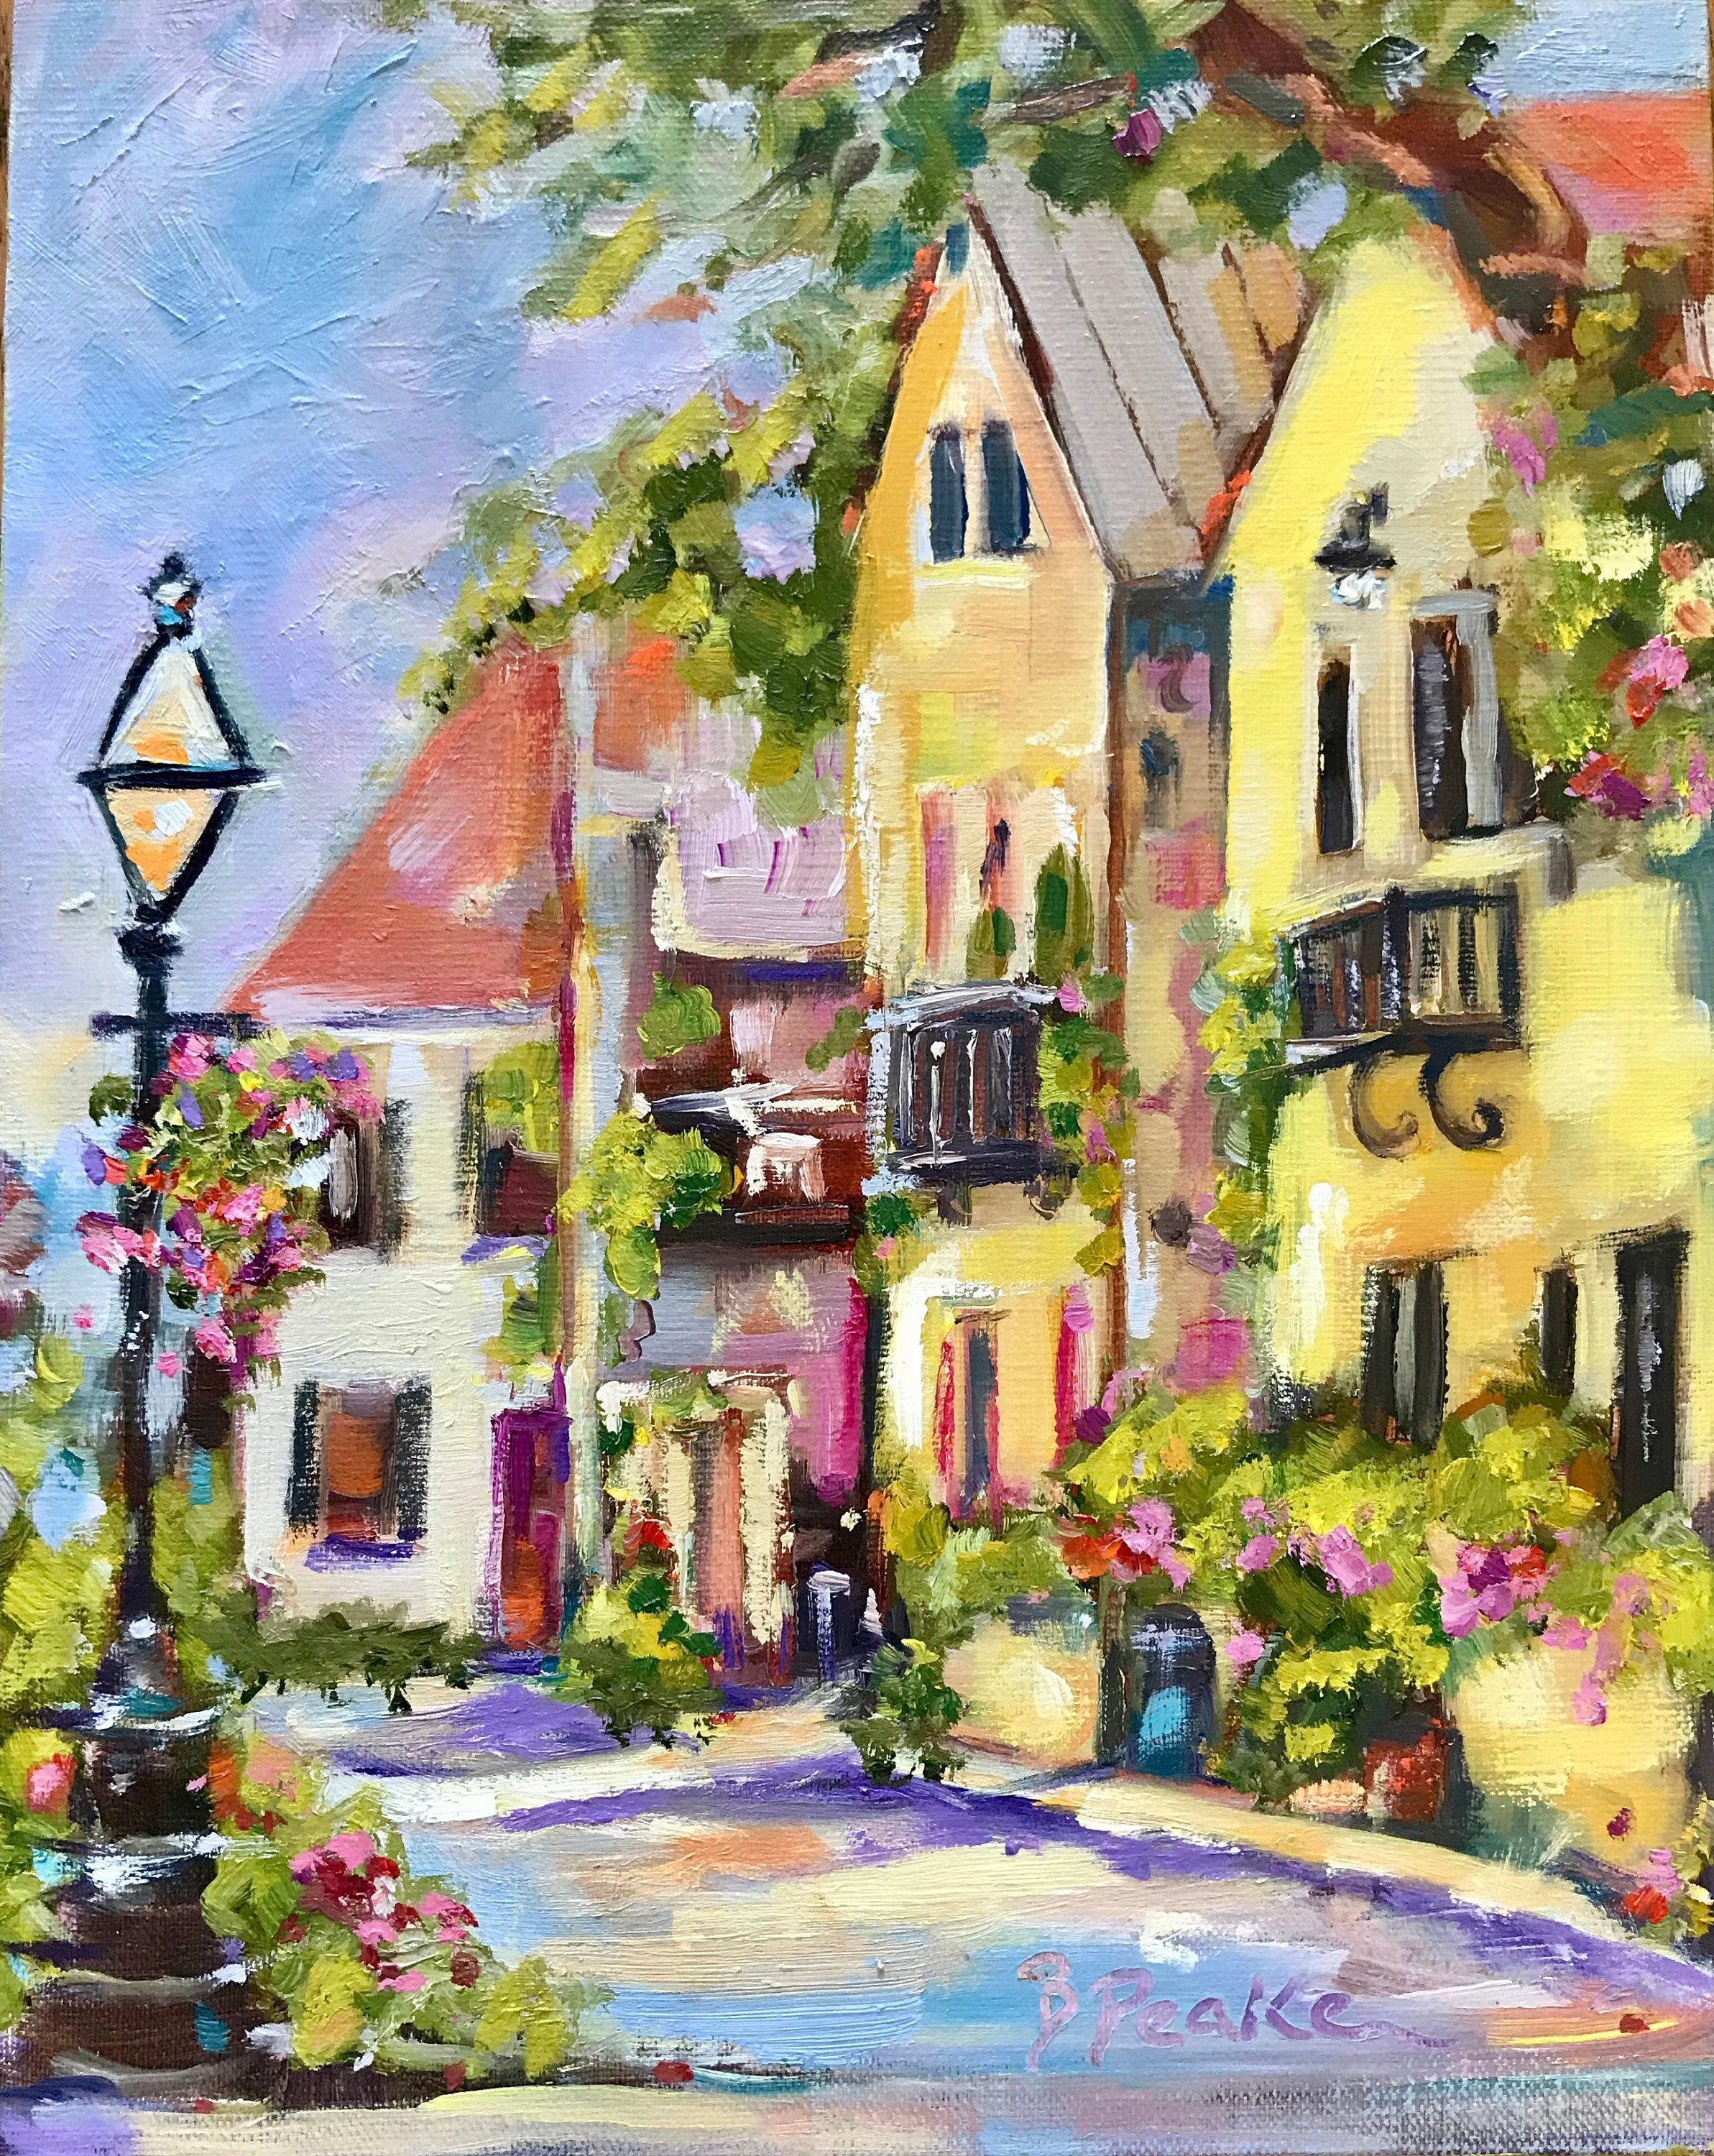 Original Oil Painting Charleston Art 8x10 Cityscape Brenda Peake